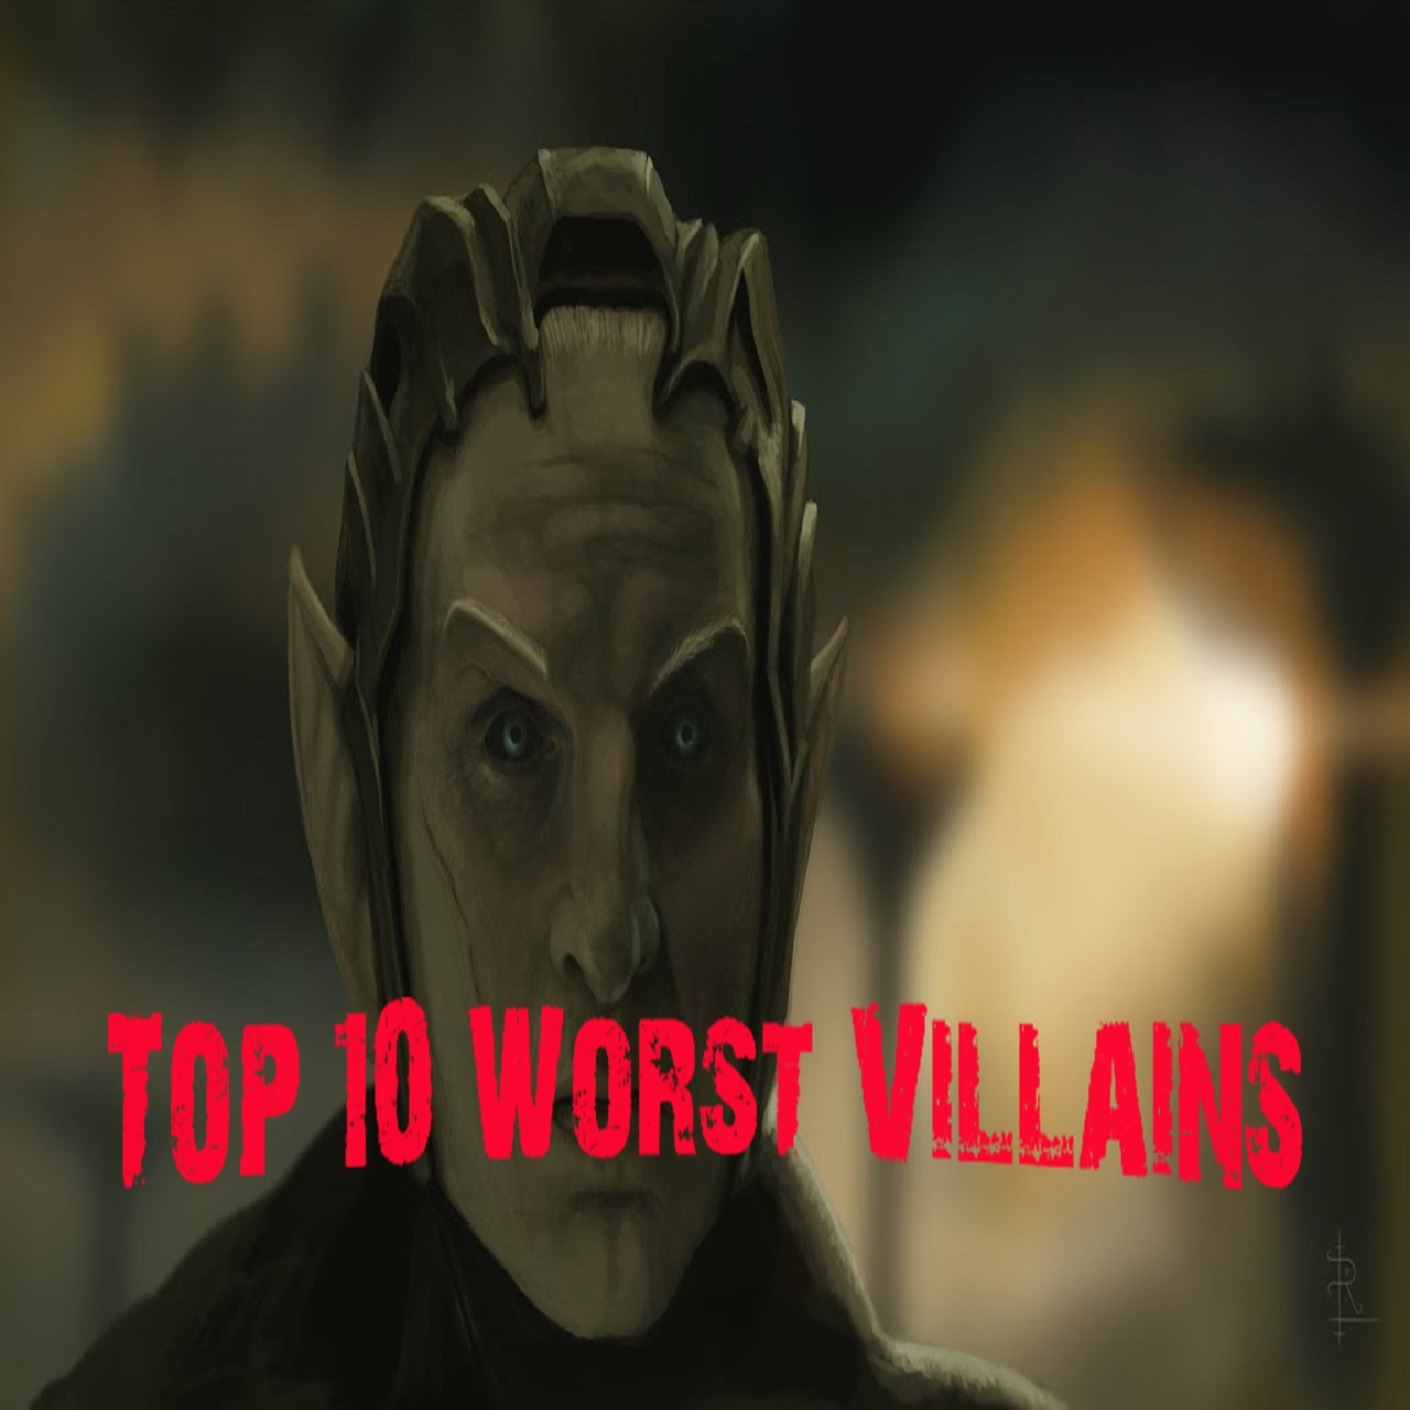 Top 10 Worst Villains